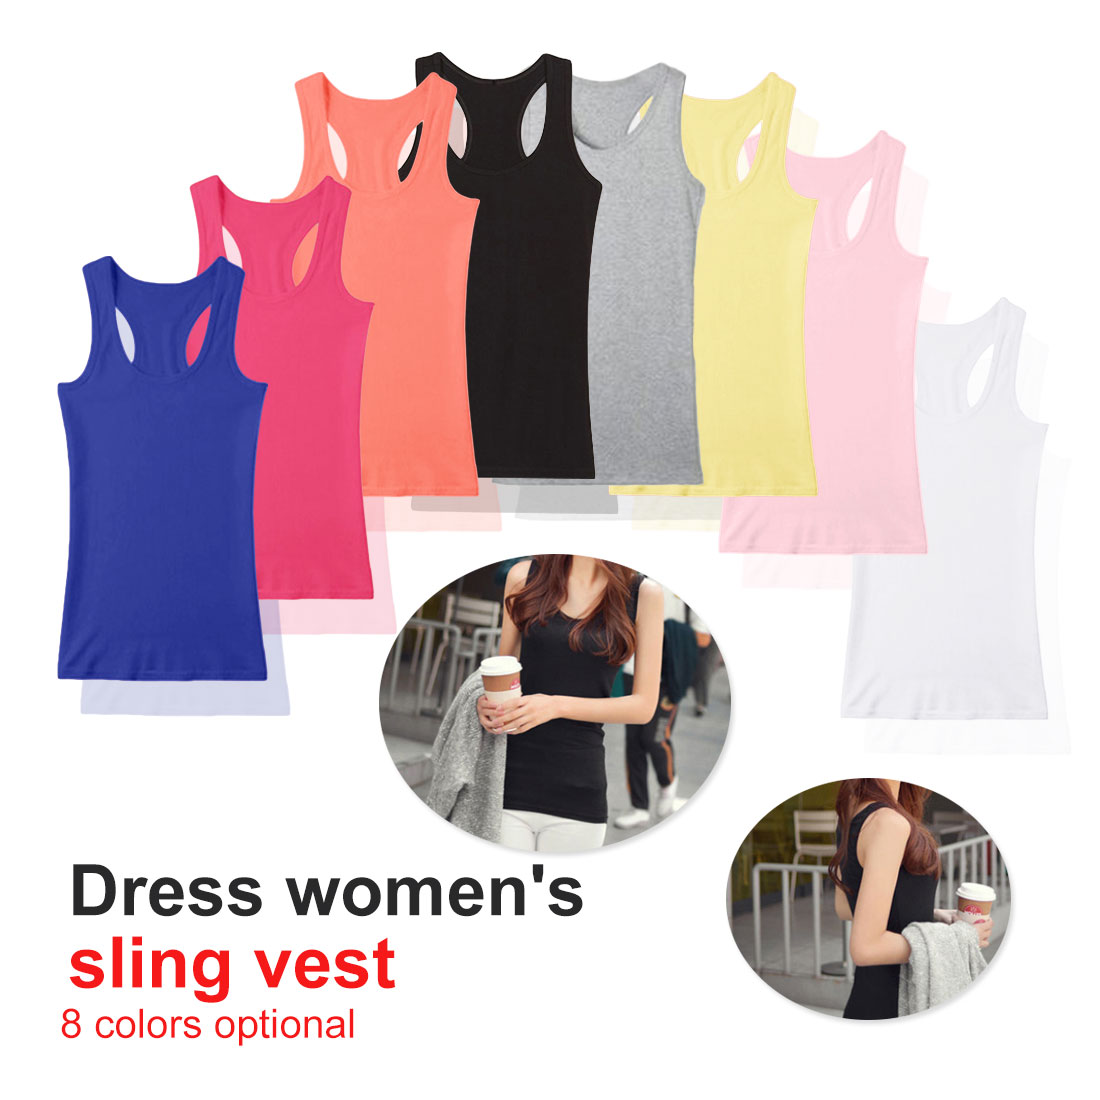 New Solid Slim Women   Tops   Summer Sleeveless Jersey Cotton Camis Tees For Woman Sexy   Top   White Black Multicolor Vest